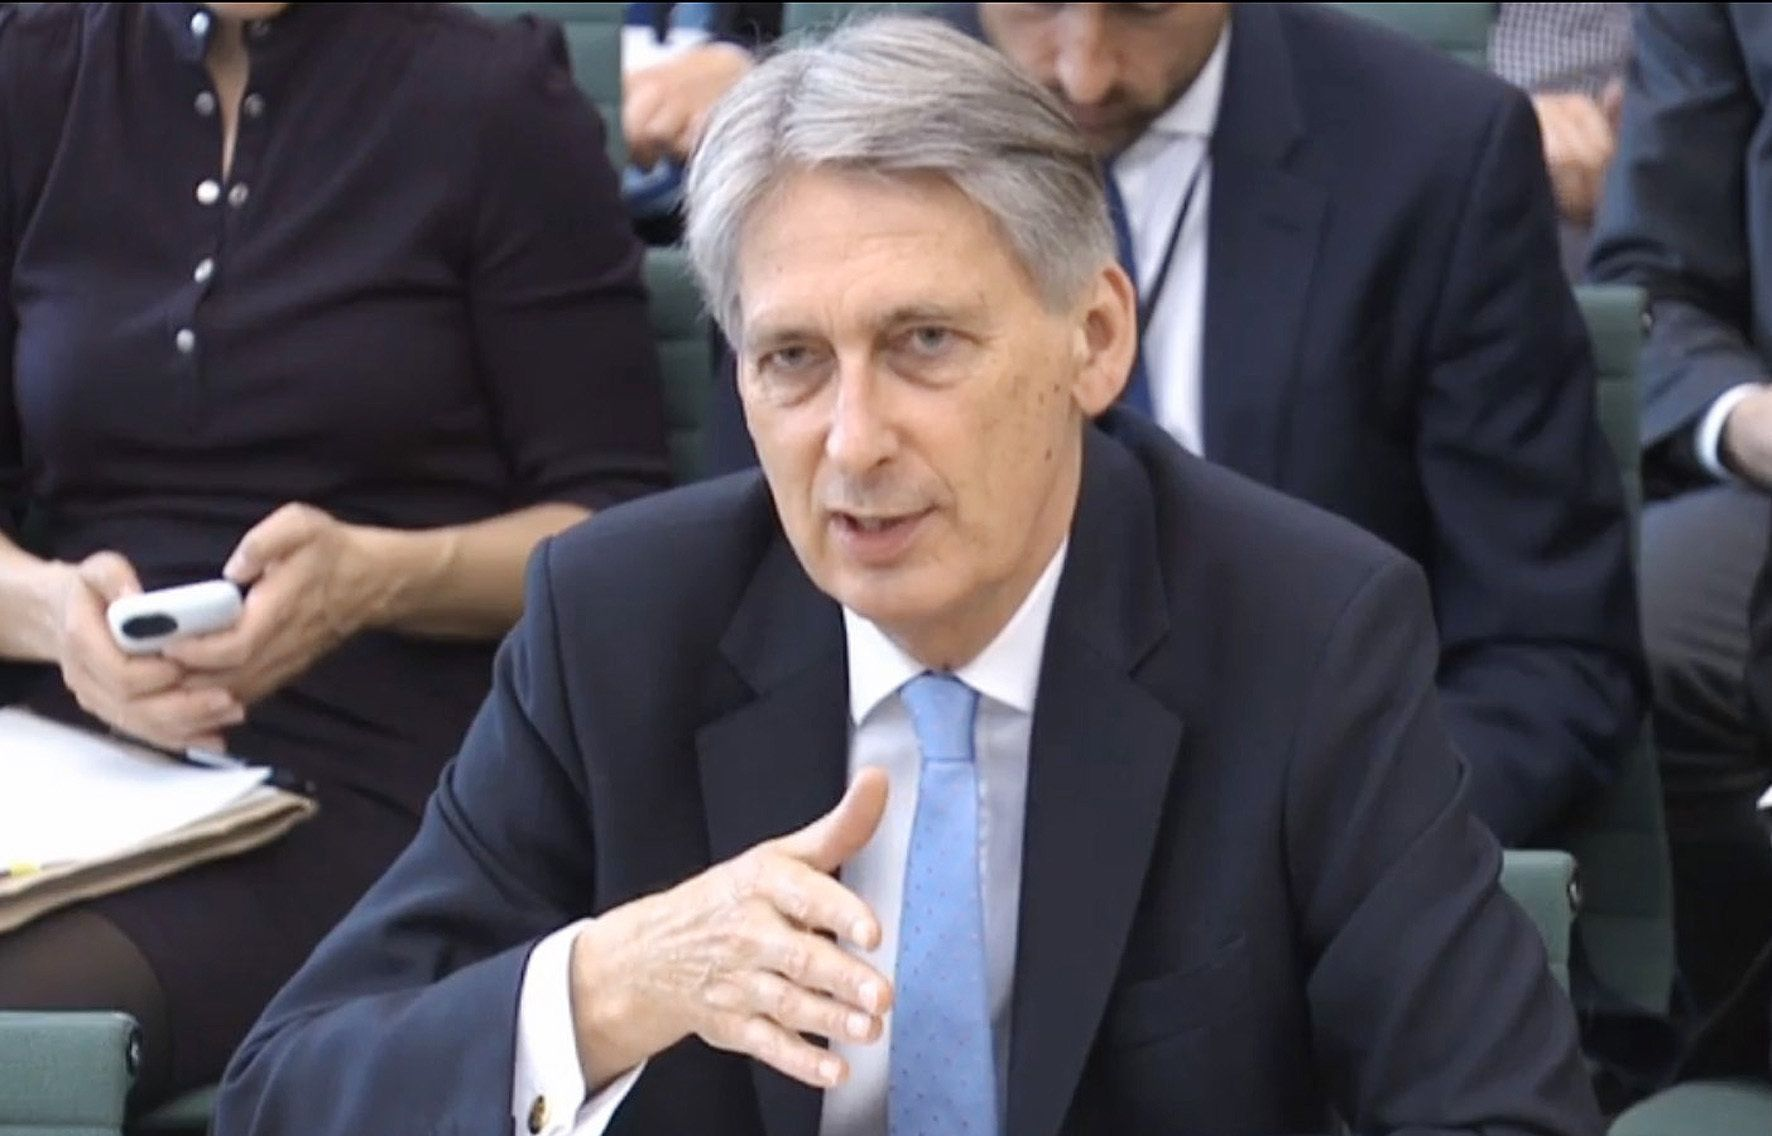 PA Wire  PA Images Chancellor Philip Hammond answering questions at the Commons Treasury Select Committee in Westminster London